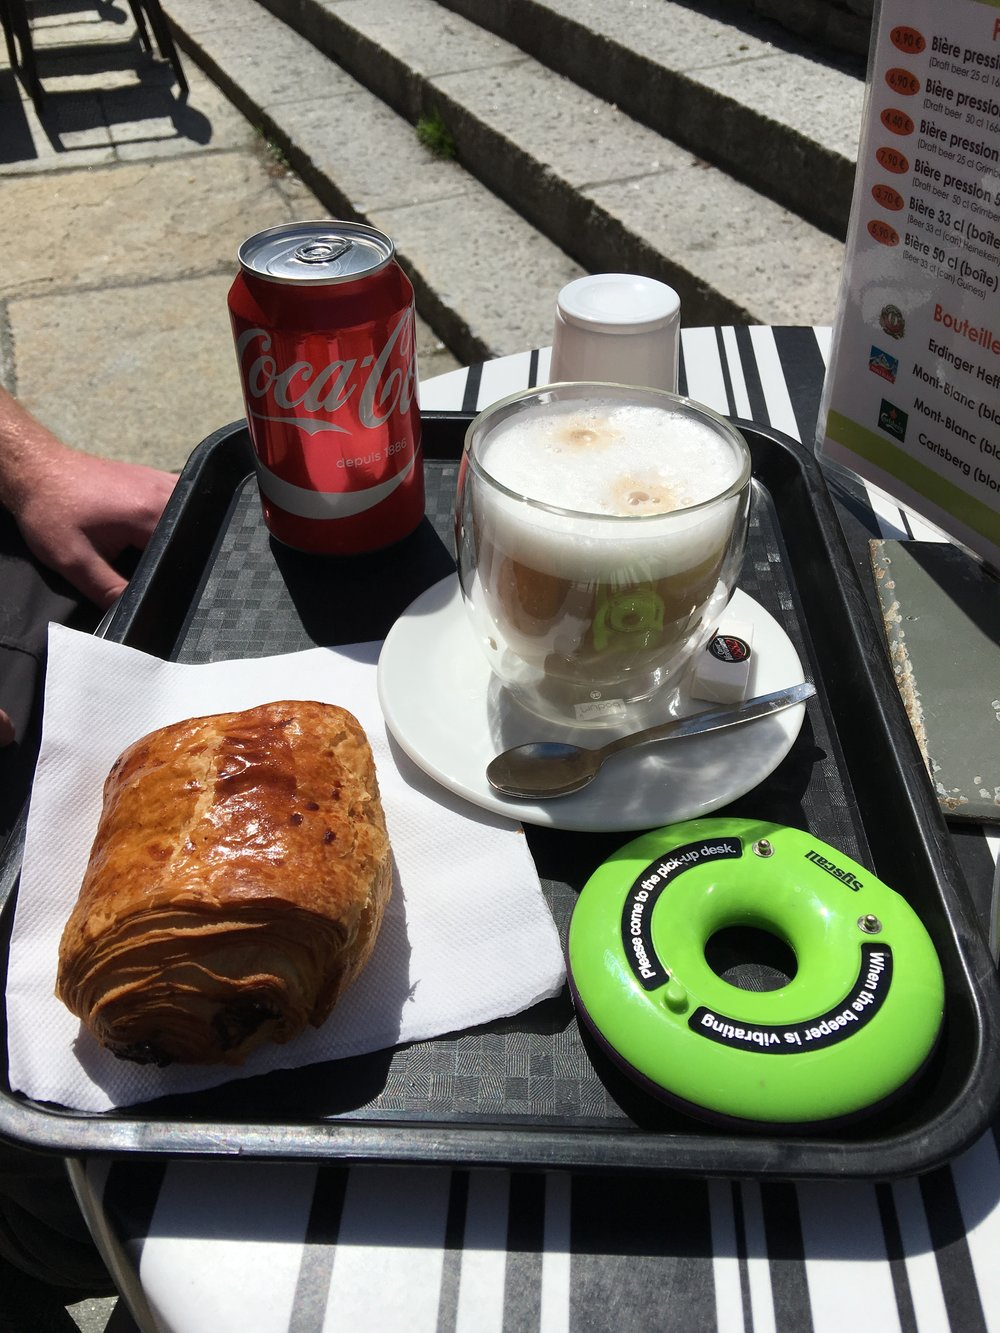 Quick breakfast... I forgot the name of the shop, but it was very close to the post office in Chamonix!